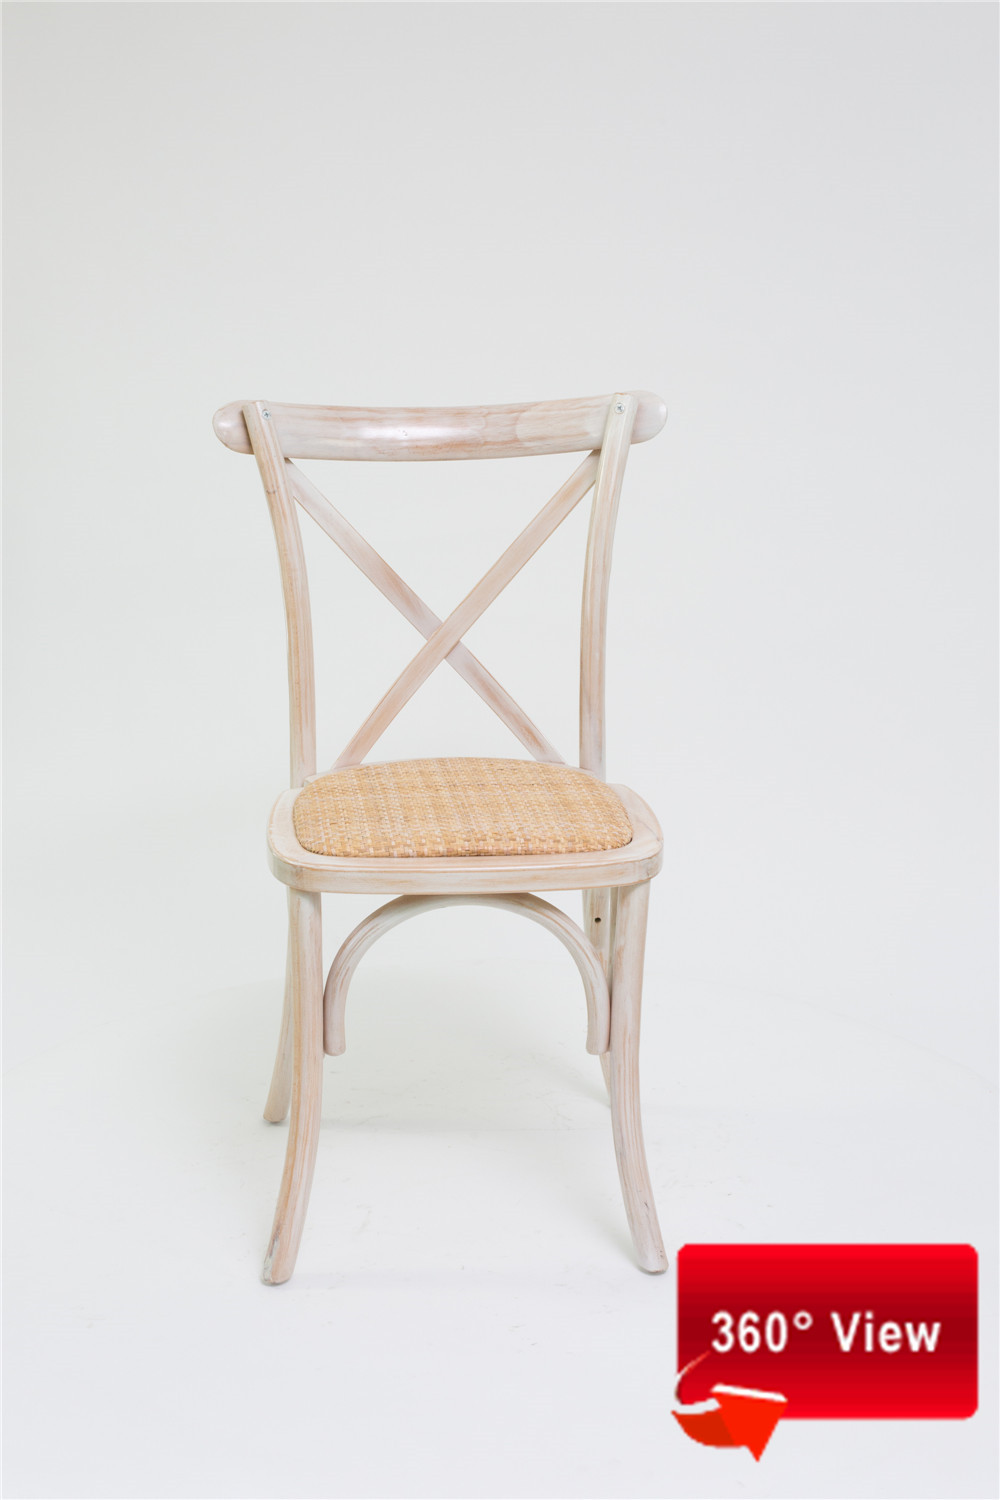 ZS-9002T RATTAN SEAT CROSS BACK CHAIR